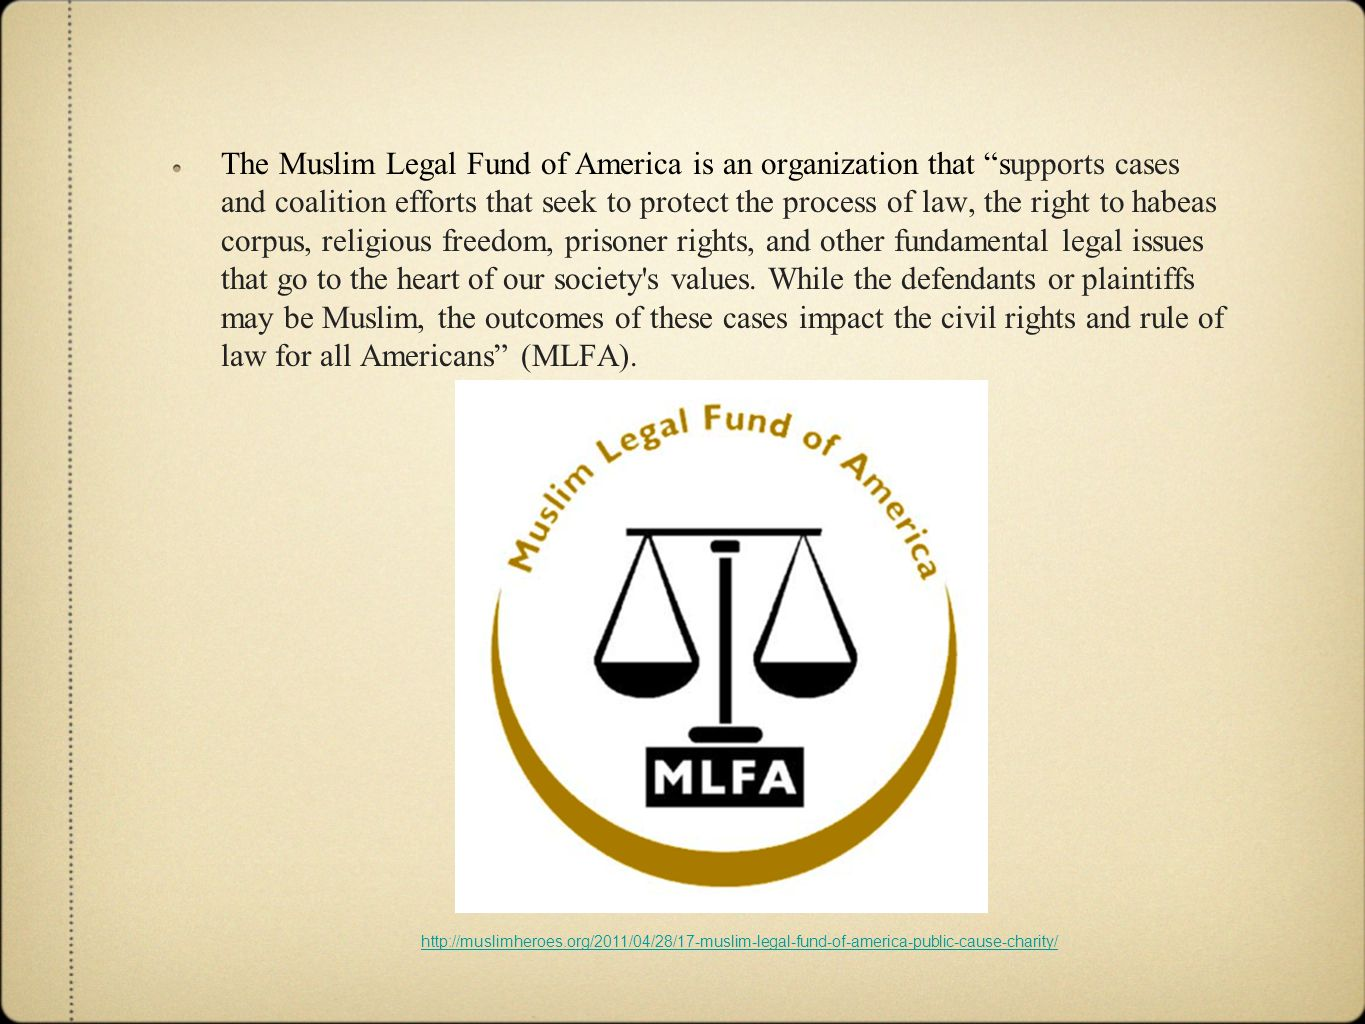 The Muslim Legal Fund of America is an organization that supports cases and coalition efforts that seek to protect the process of law, the right to habeas corpus, religious freedom, prisoner rights, and other fundamental legal issues that go to the heart of our society s values.